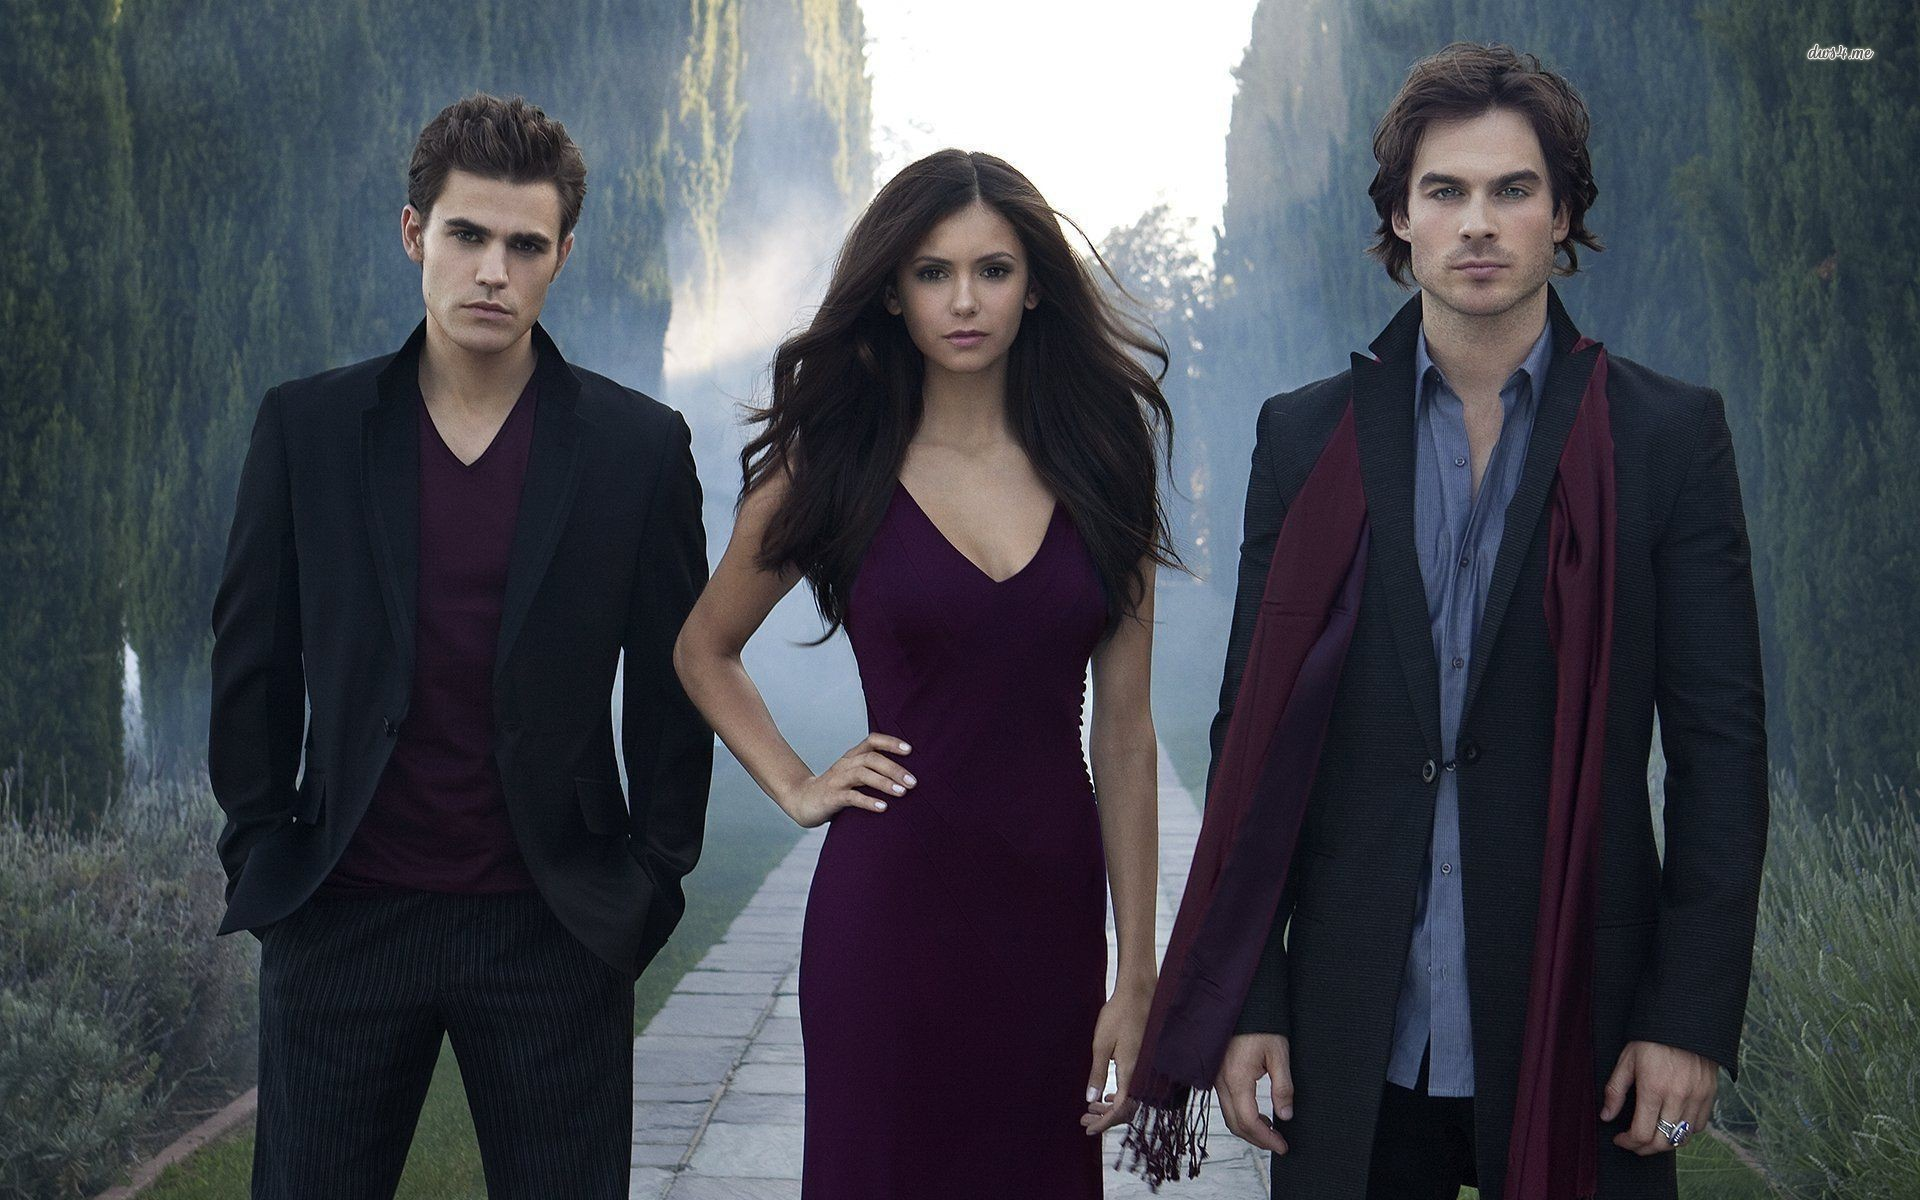 The Vampire Diaries HD Desktop Wallpapers  wallpapers The Vampire Diaries Blood Wallpaper Wallpapers  Share  View with 1920x1200